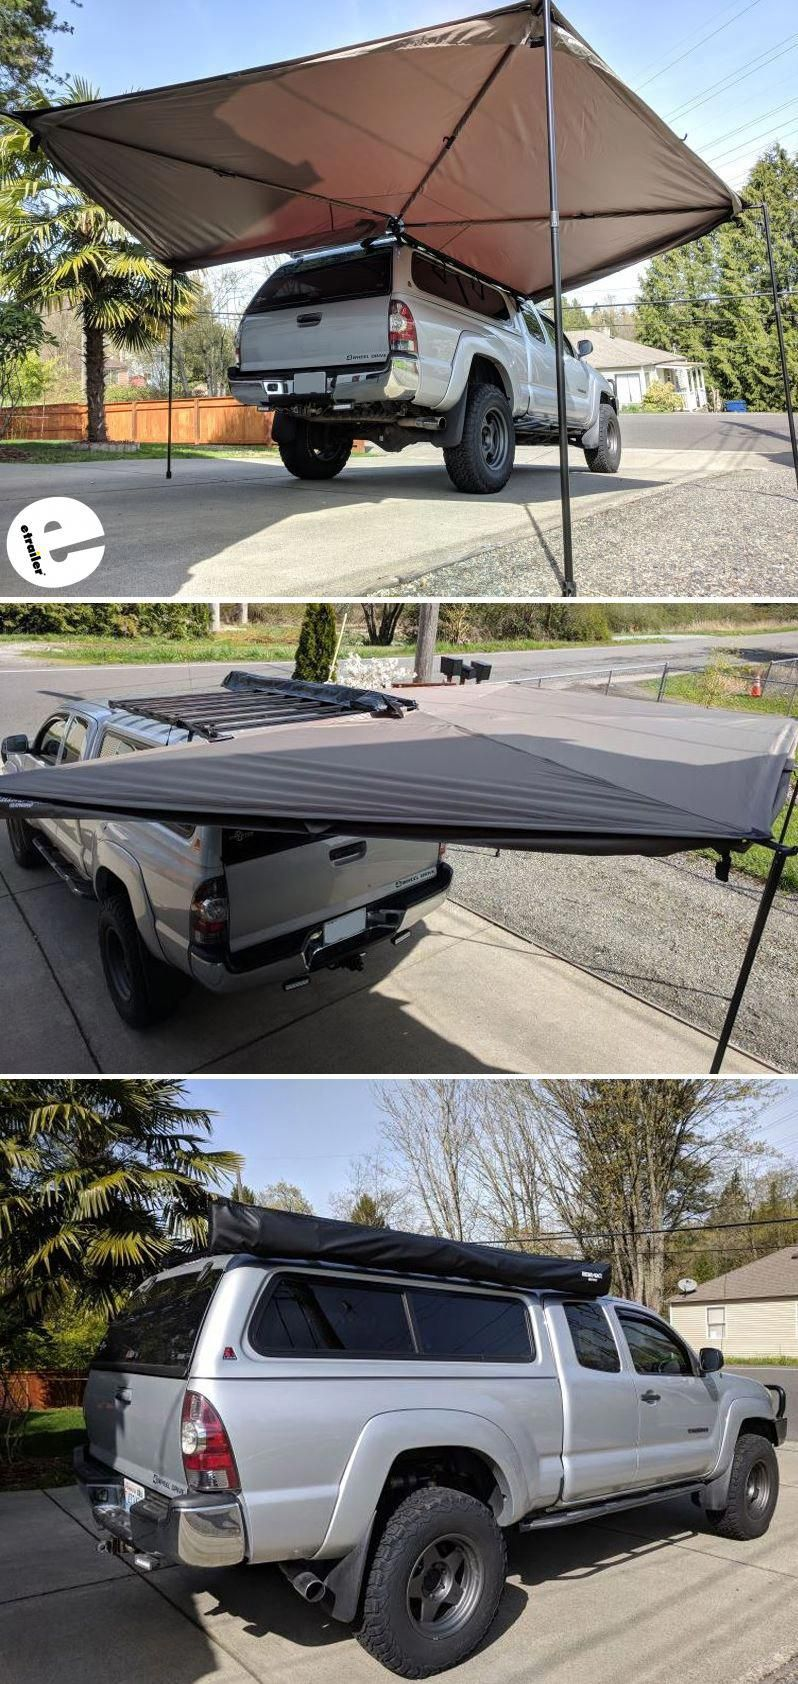 Easy To Operate This Roof Rack Mounted Awning Is Perfect For Tailgaters Campers And Tradesmen To Provide Shade Off Your Vehic Car Awnings Roof Rack Car Tent